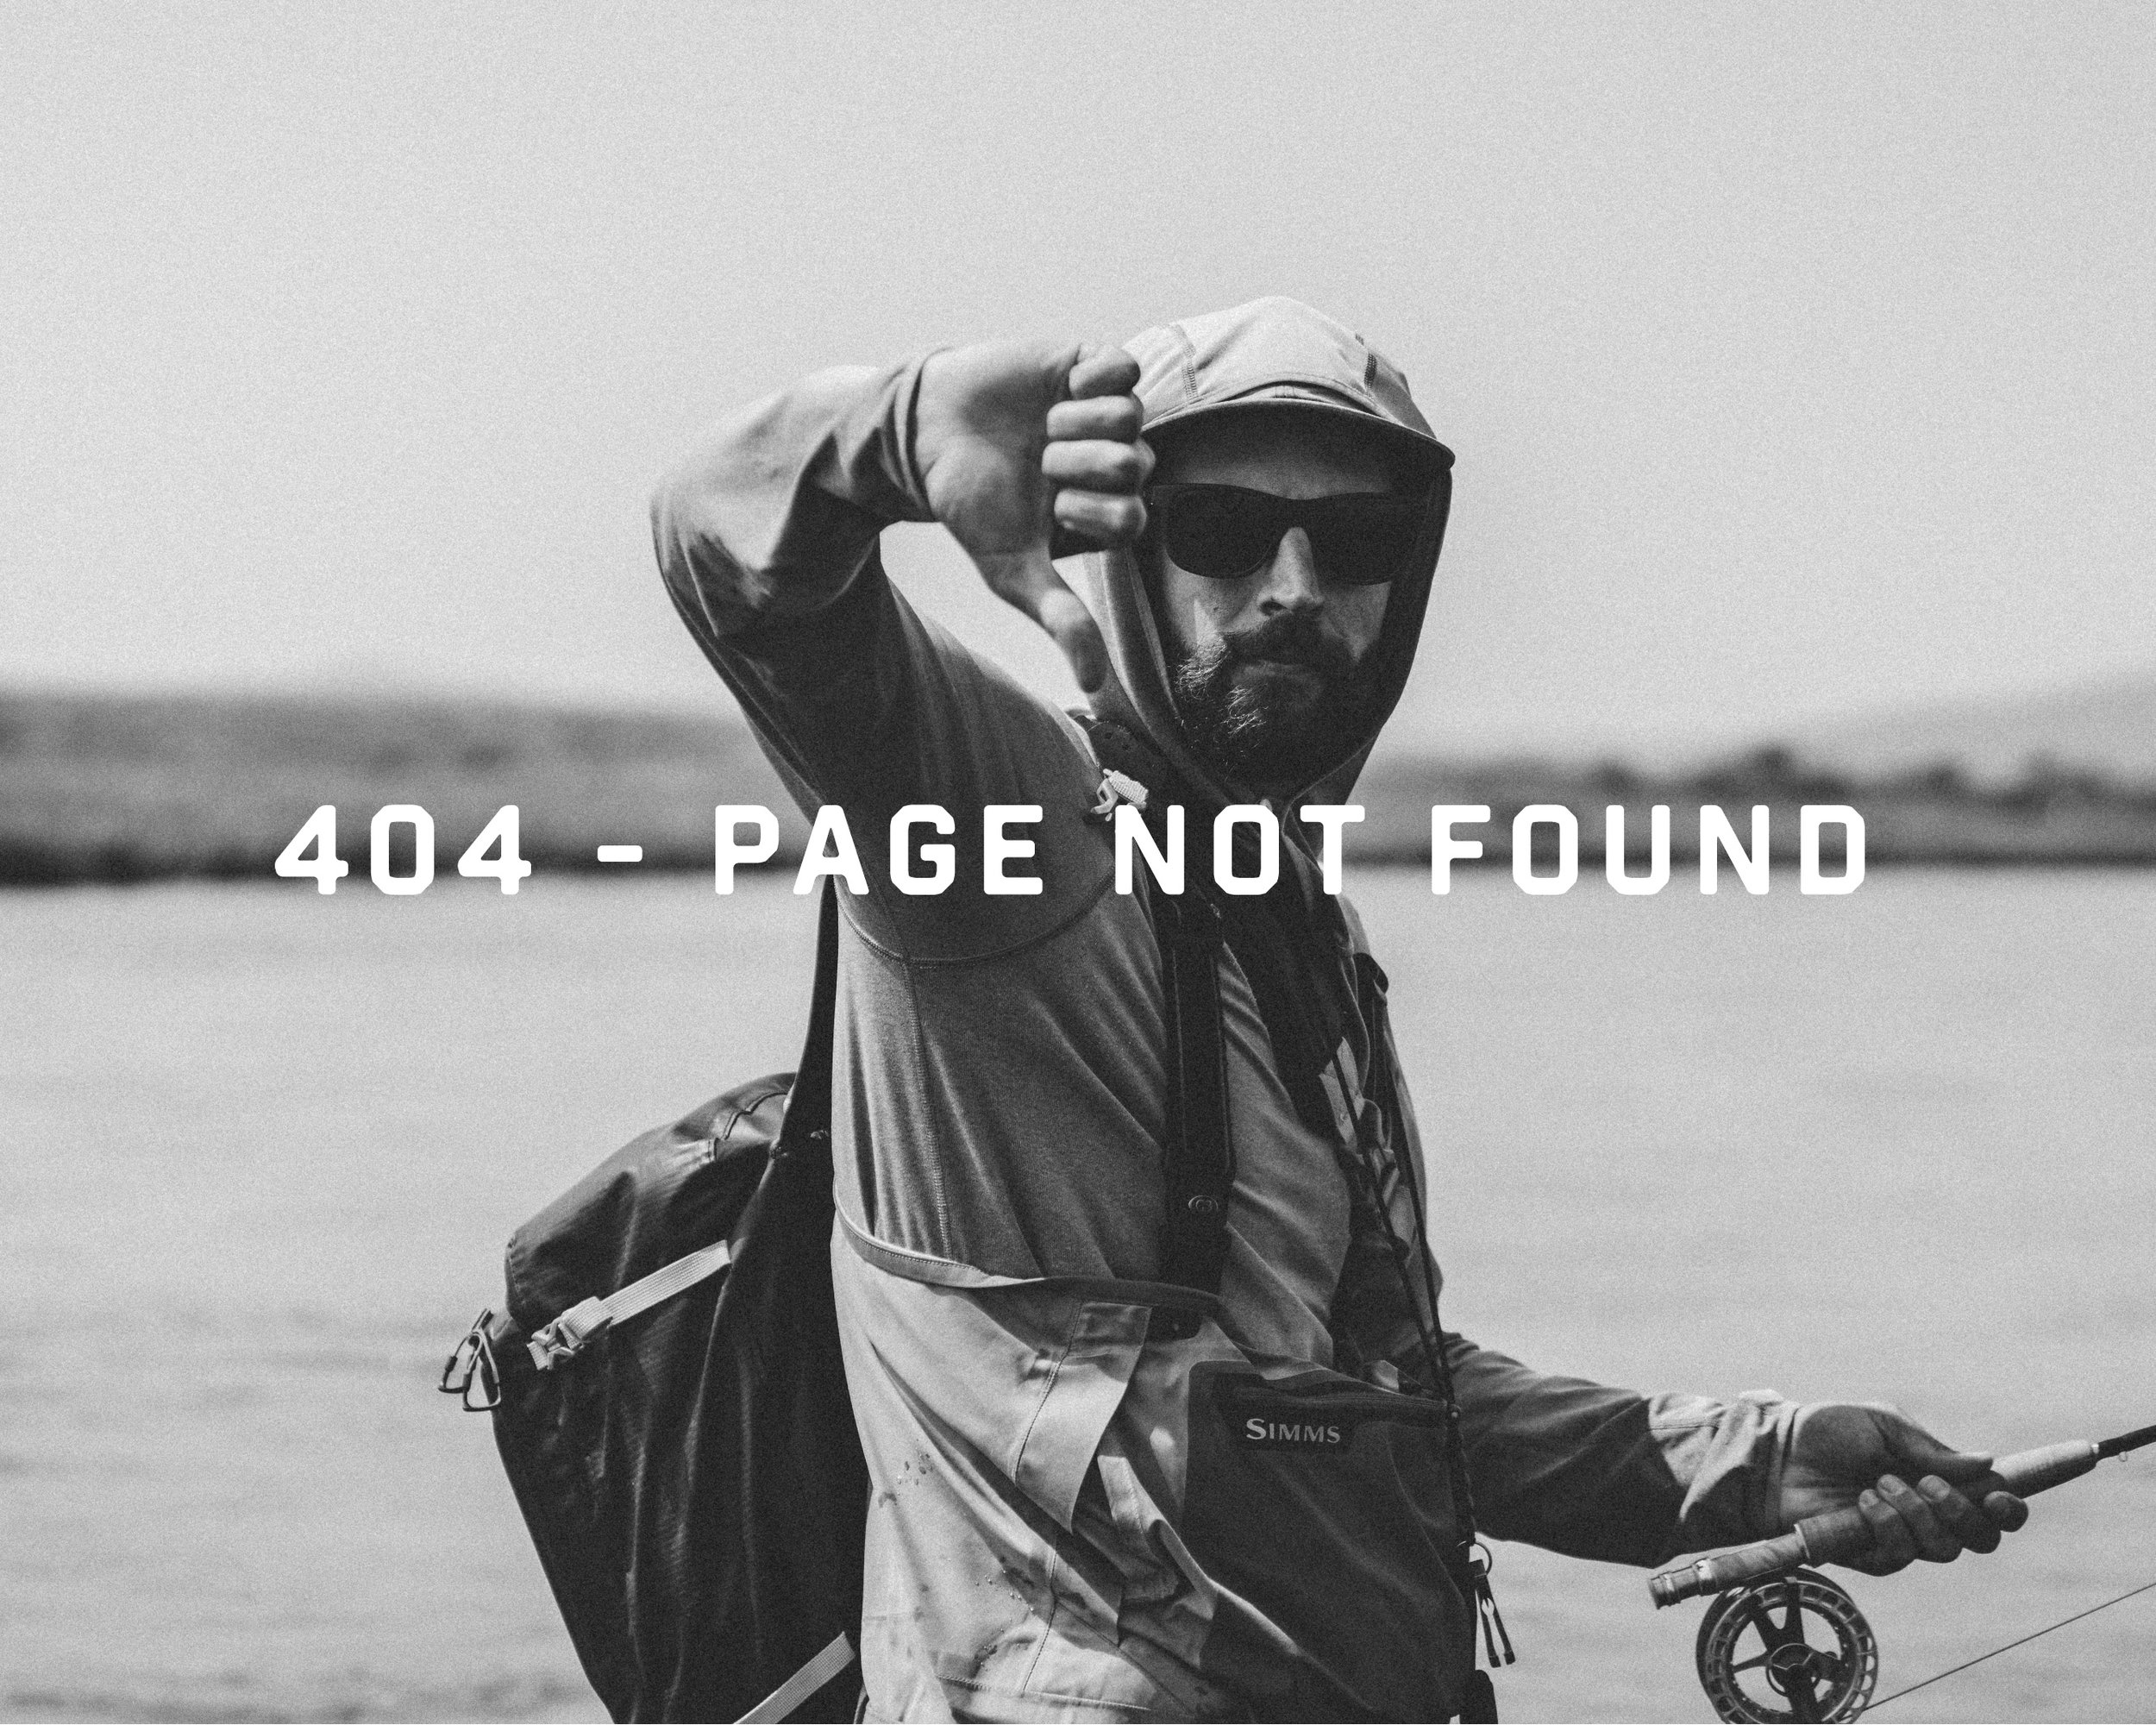 We couldn't find the page you were looking for. This is either because:    There is an error in the URL entered into your web browser. Please check the URL and try again.    The page you are looking for has been moved or deleted.    You can return to the homepage by    clicking here   .